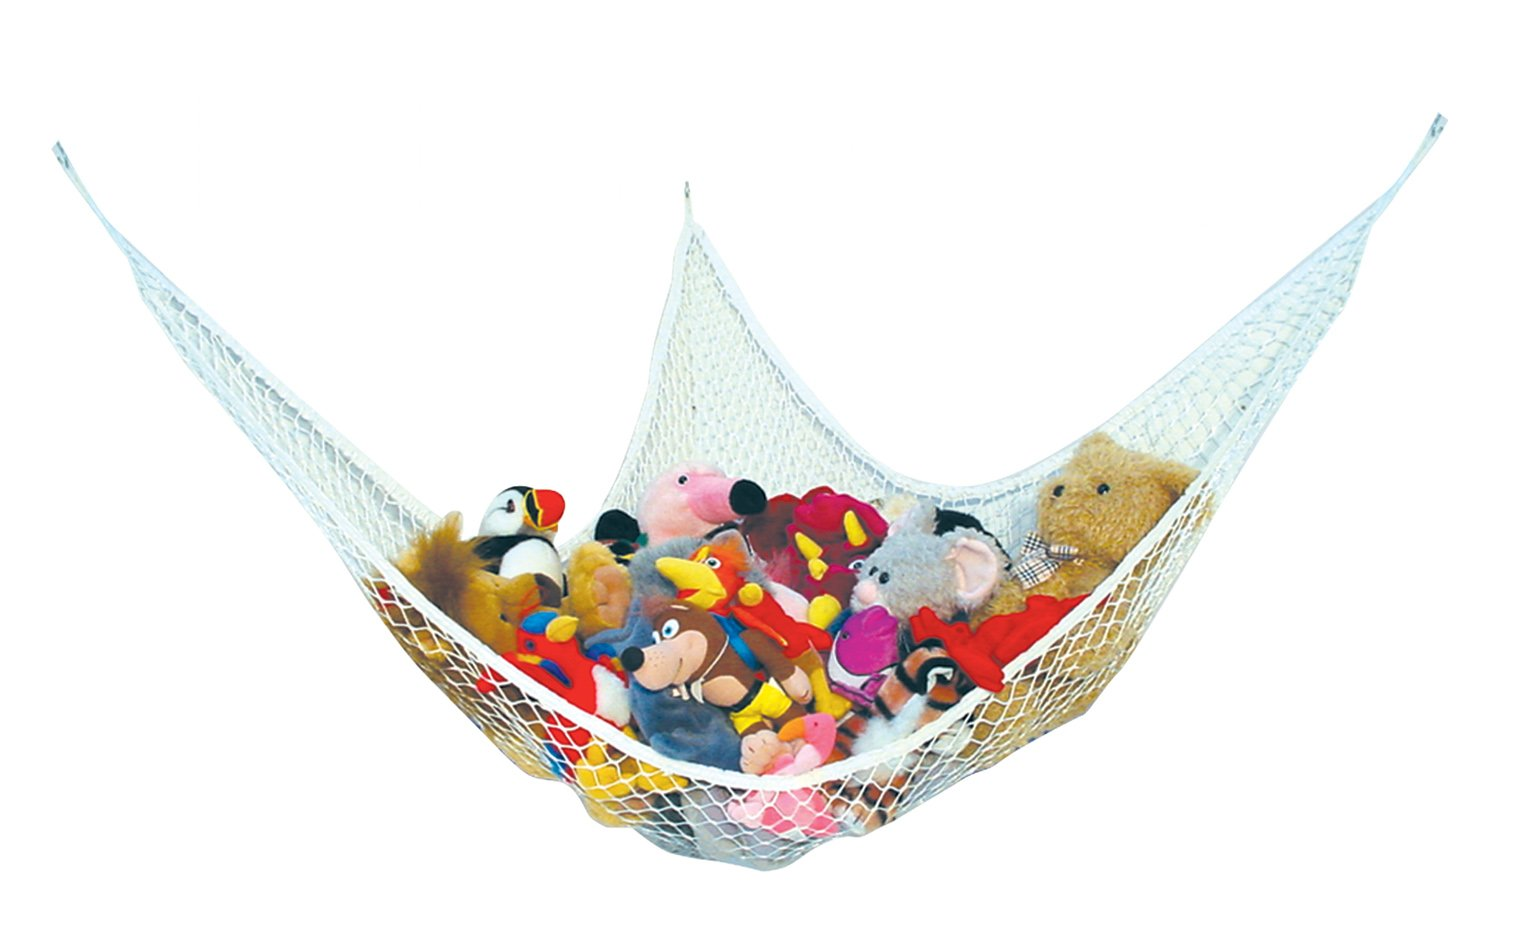 Best for keeping rooms clean Toy Organizer Storage Net is Durable and Easy to Install Enovoe 1 organized and clutter-free Comes with BONUS FREE E-Book Stuffed Animal Toy Hammock